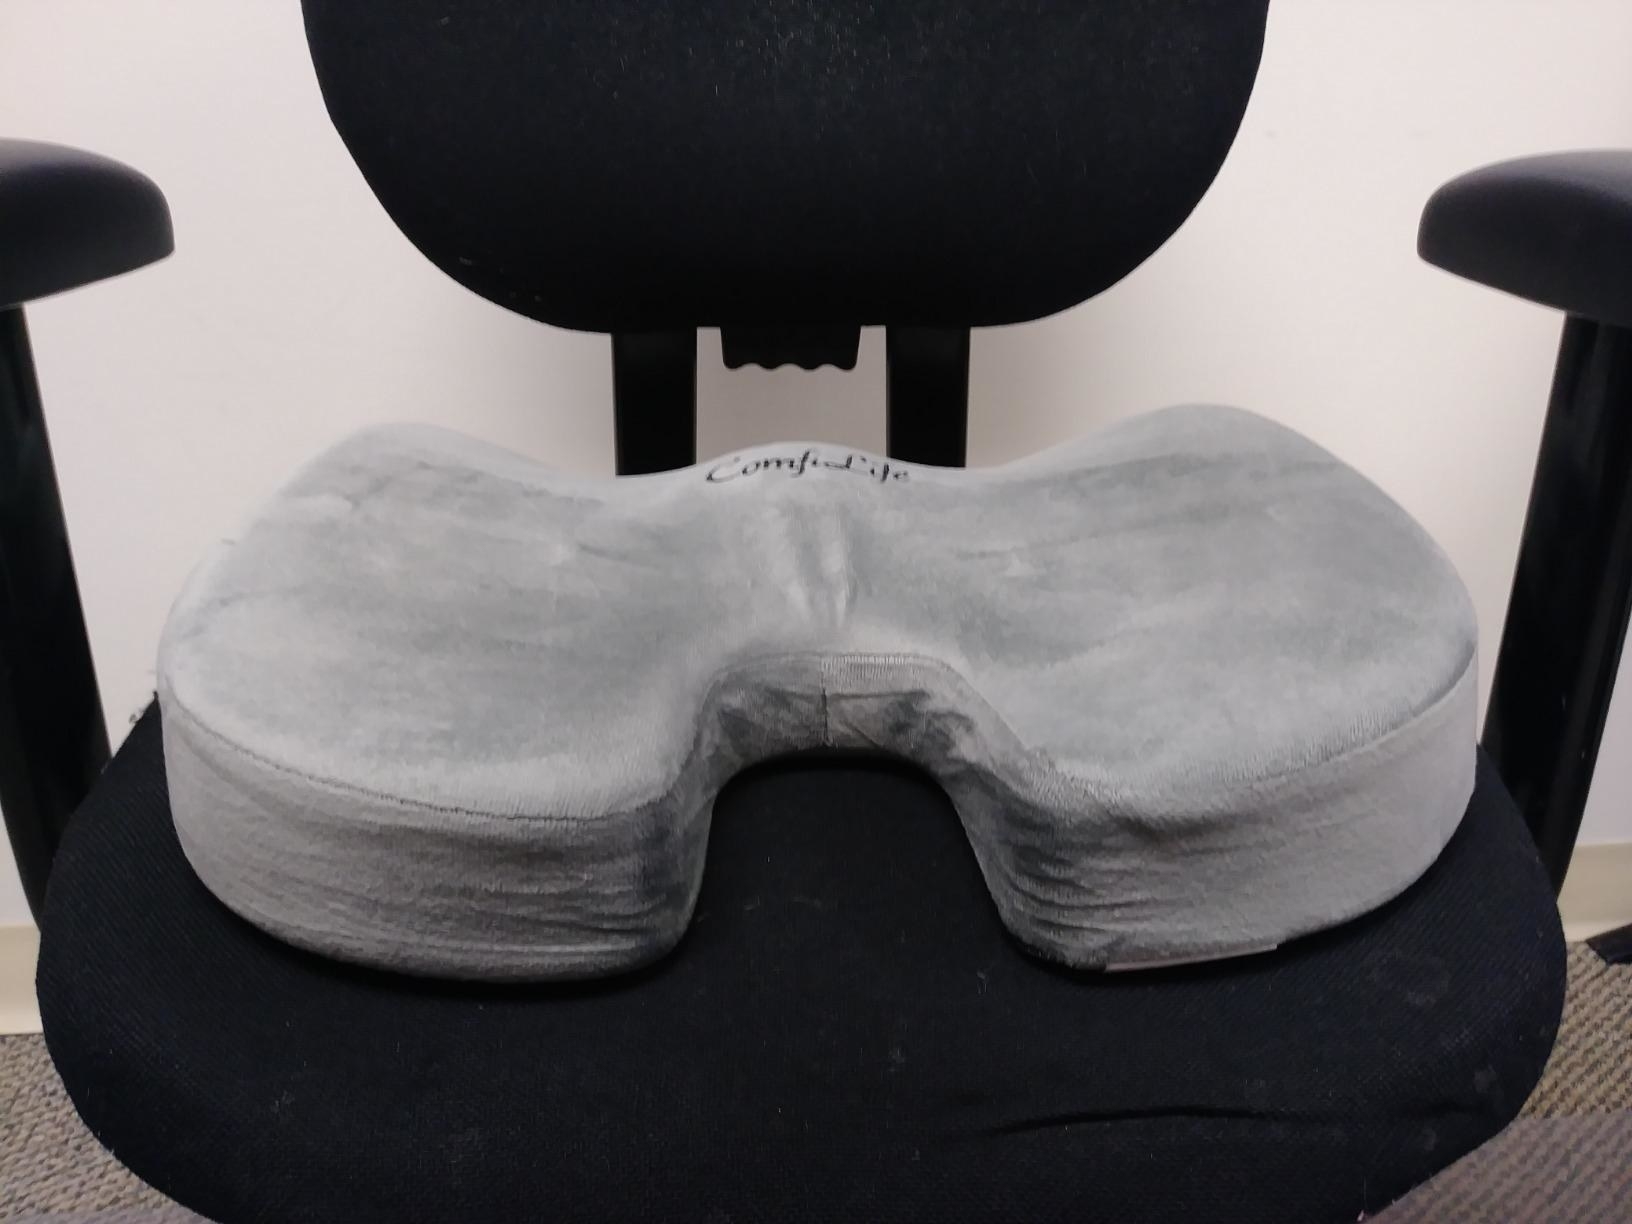 Reviewer's swivel office chair with a memory foam cushion resting on it